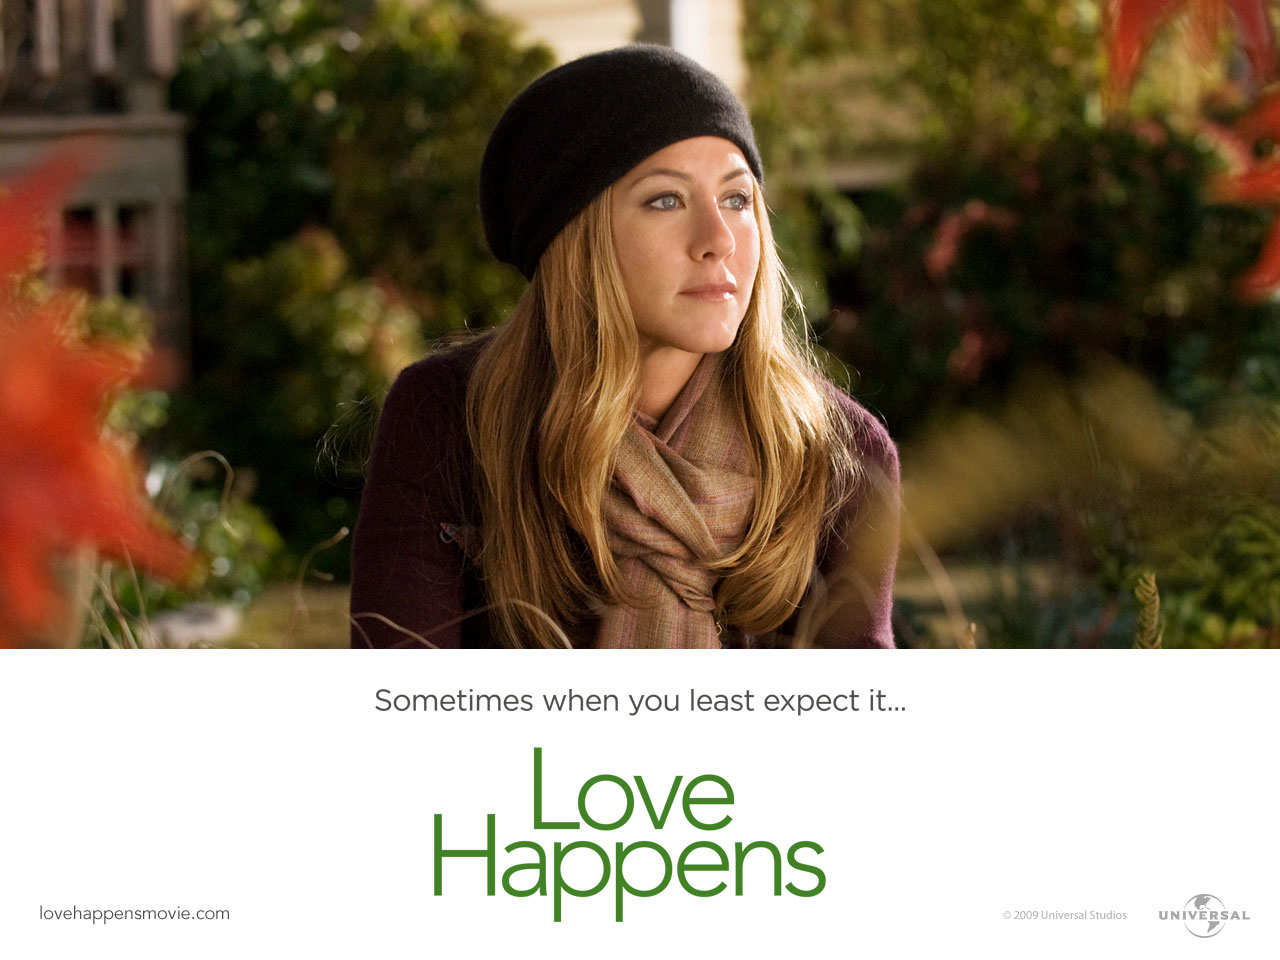 http://2.bp.blogspot.com/_fwTjfV-2UQA/TKAL0wKgnnI/AAAAAAAABlE/f2yDysUeiHs/s1600/Jennifer_Aniston_in_Love_Happens_Wallpaper_5_800.jpg